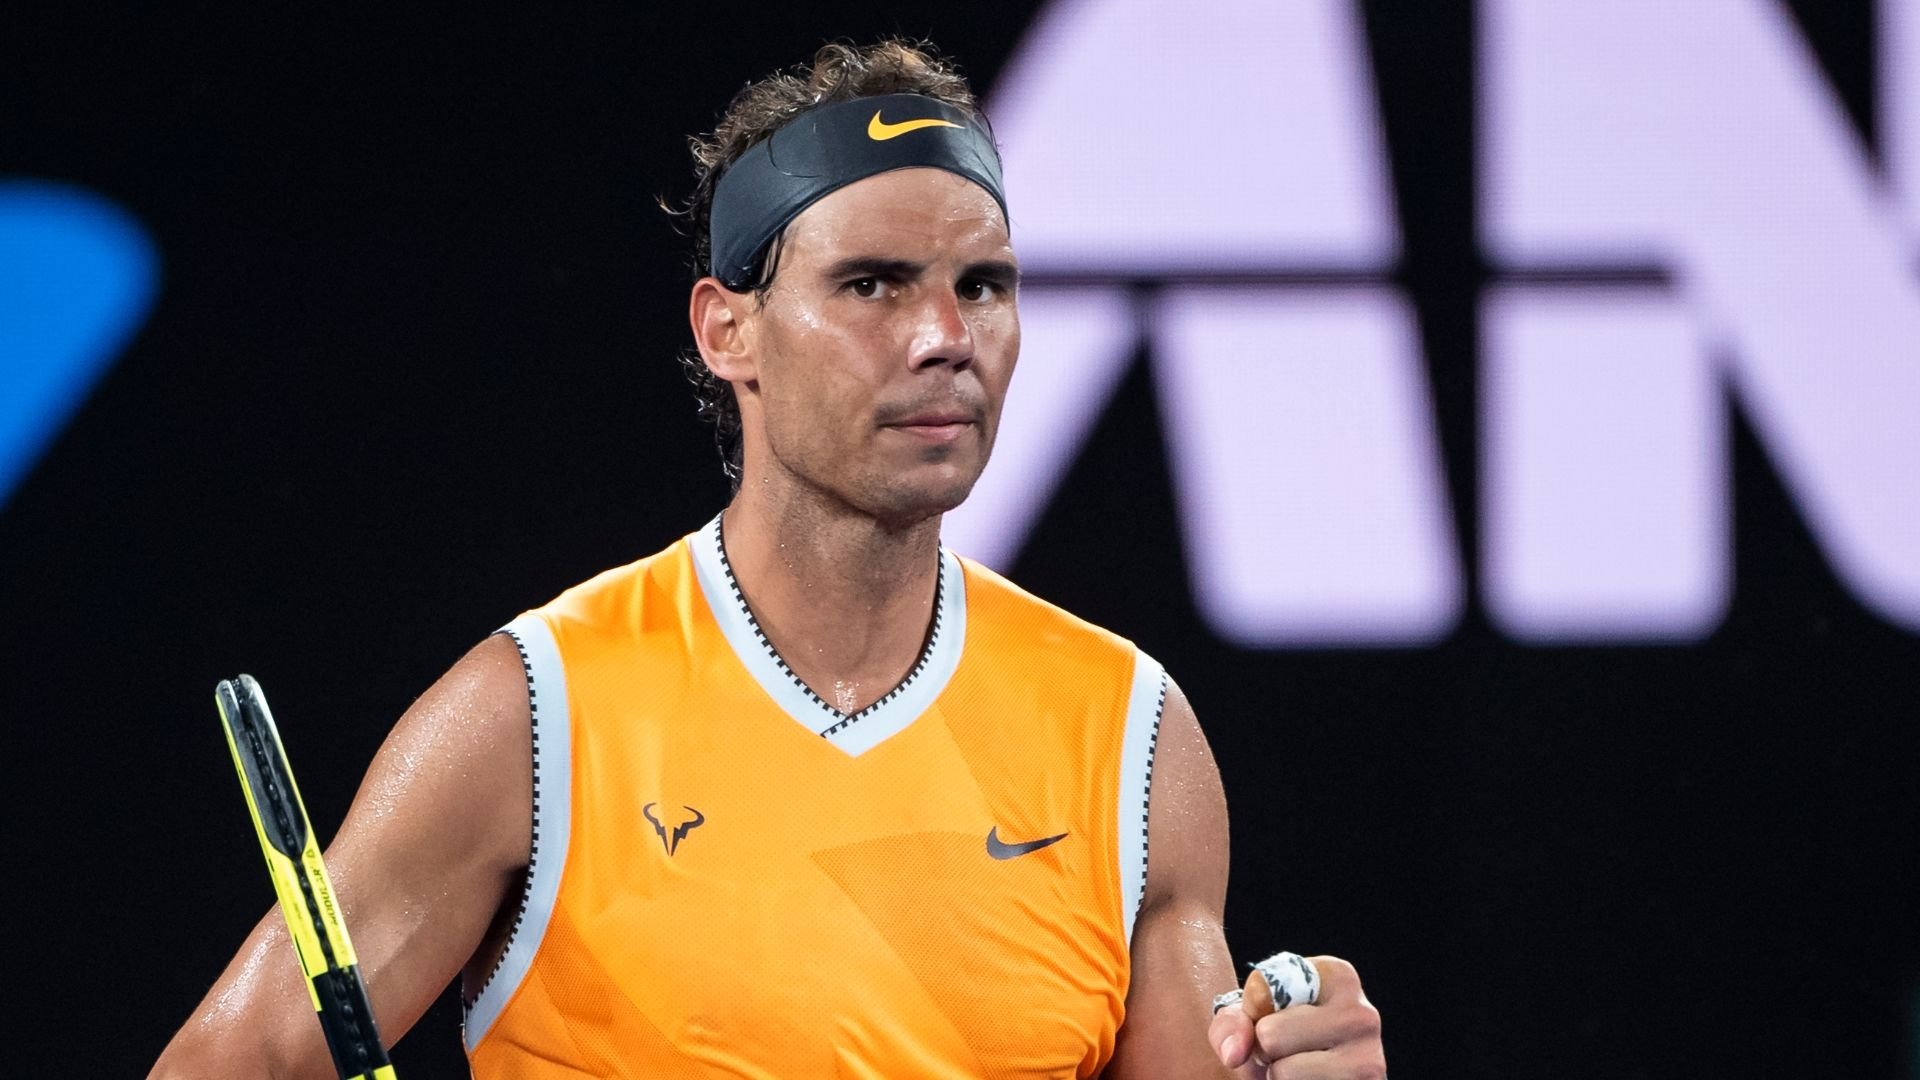 Nadal advances to 3rd round of Australian Open